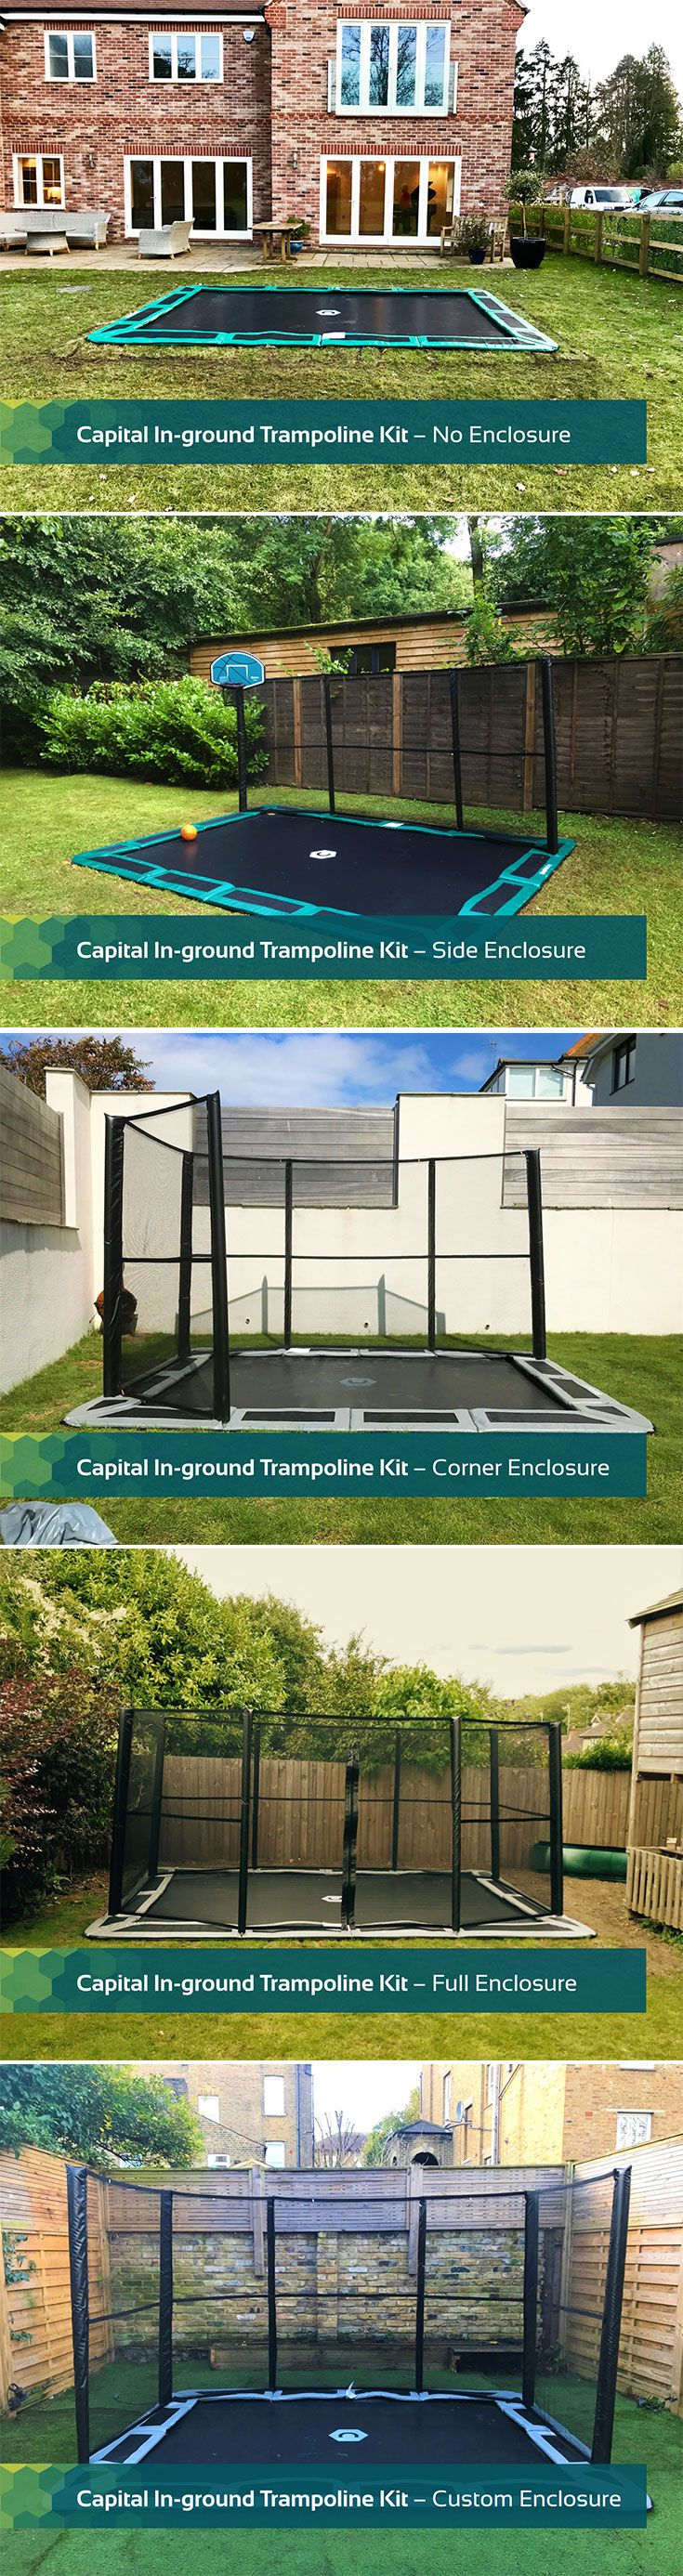 We offer a full range of in-ground trampoline safety enclosures for both our circular and rectangular in-ground trampolines.  You don't need to have one but its also nice to know you can if you want to. Check out all of your options here:  https://www.capitalplay.co.uk/capital-in-ground-enclosures